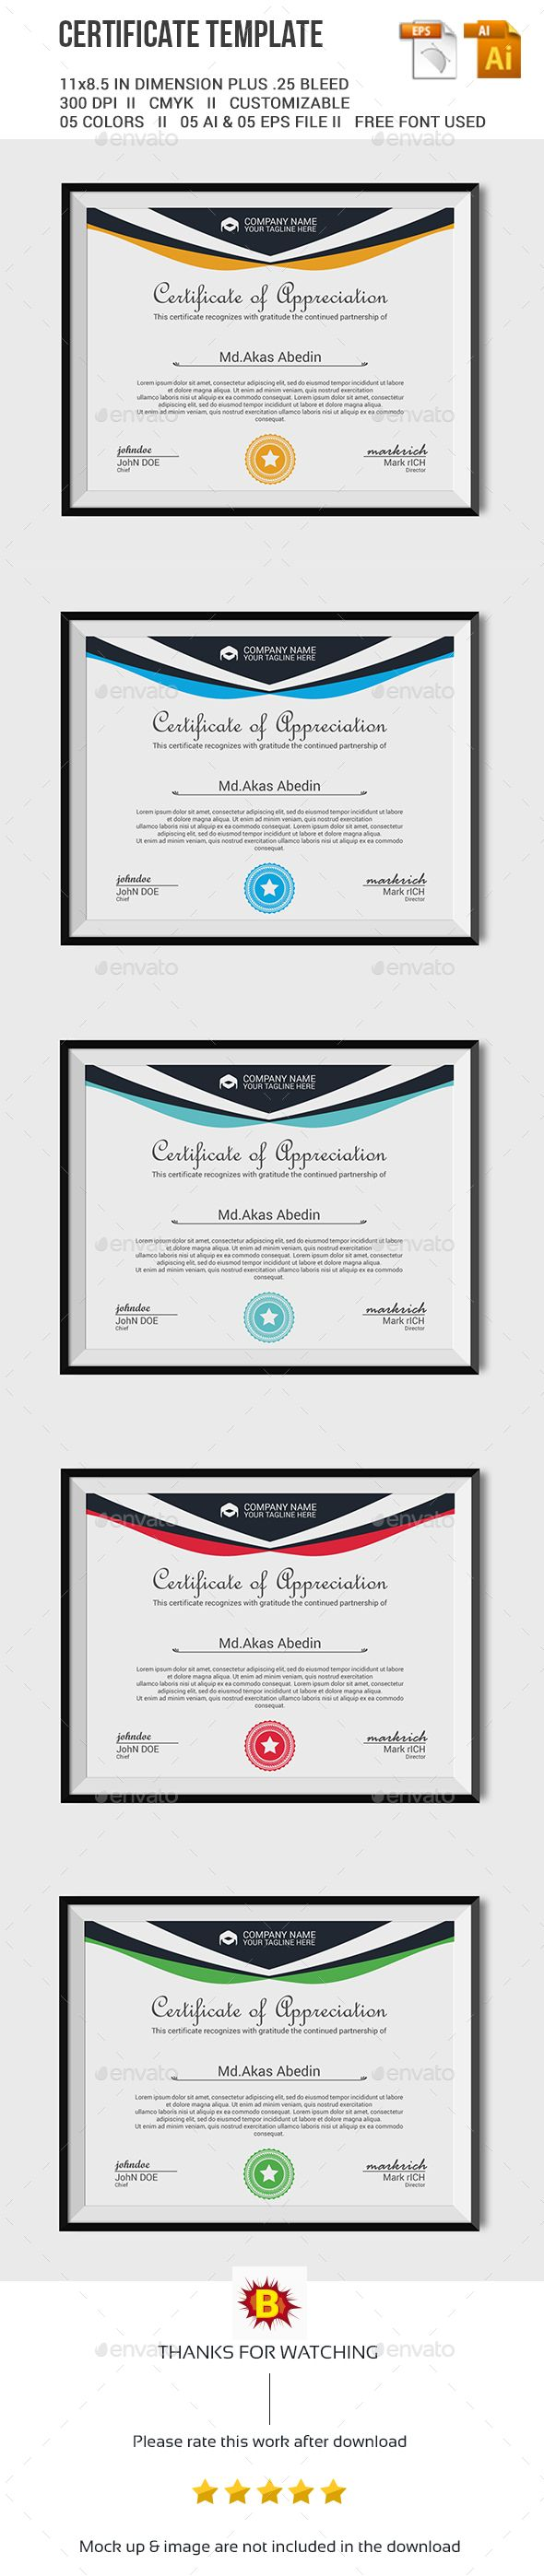 best ideas about certificate templates gift certificate template vector eps ai here graphicriver